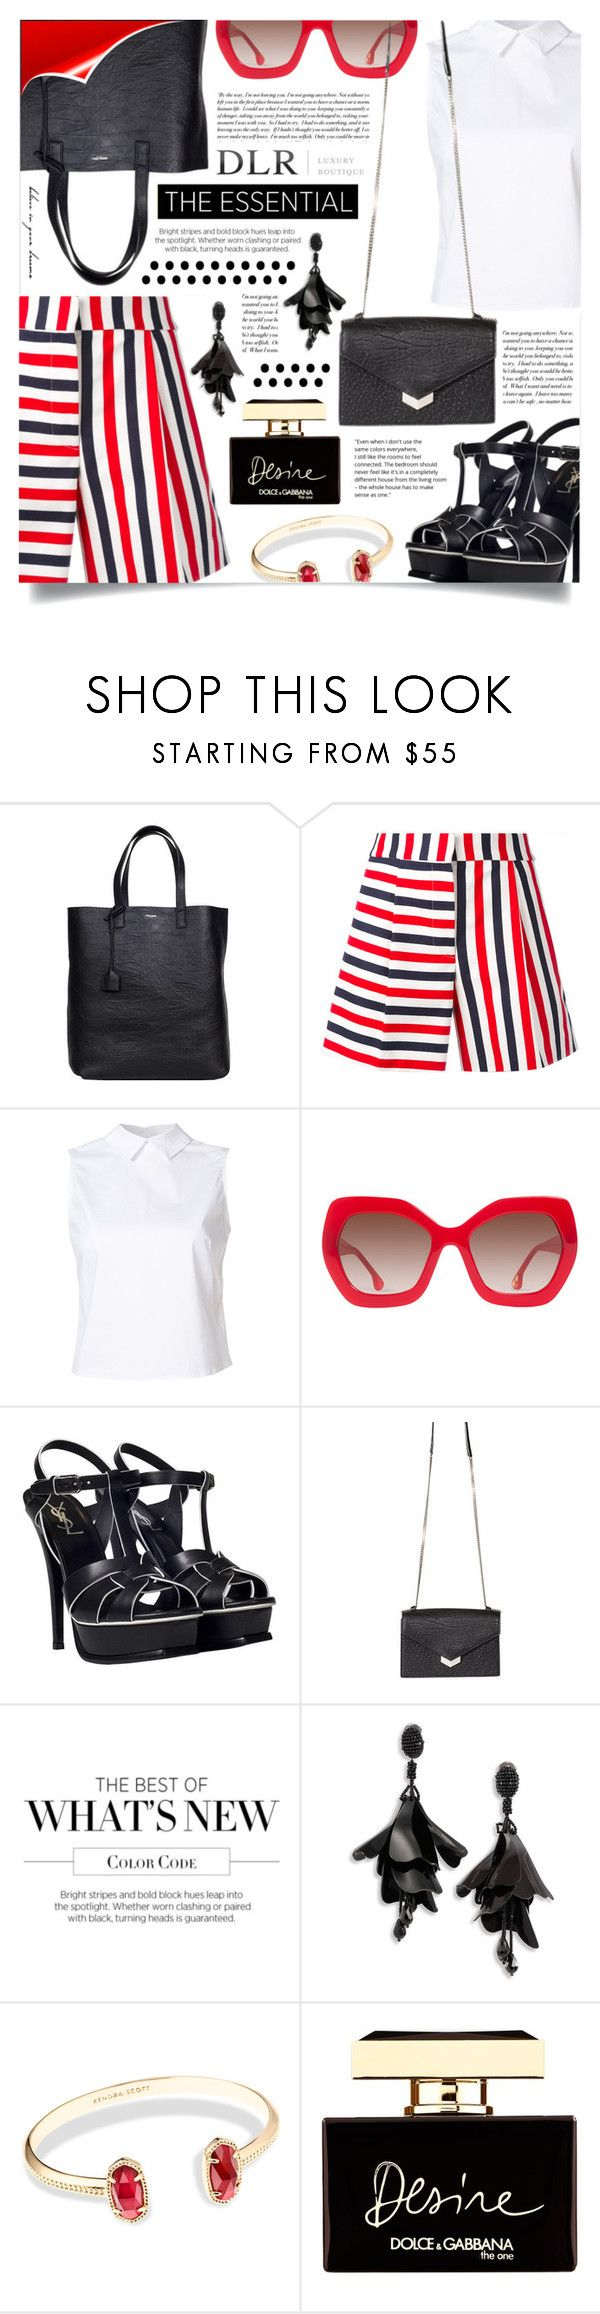 """SALES! DLRBOUTIQUE"" by gorgeautiful ❤ liked on Polyvore featuring Yves Saint Laurent, Thom Browne, Misha Nonoo, Alice + Olivia, Jimmy Choo, Cullen, Oscar de la Renta, Kendra Scott and Dolce&Gabbana"